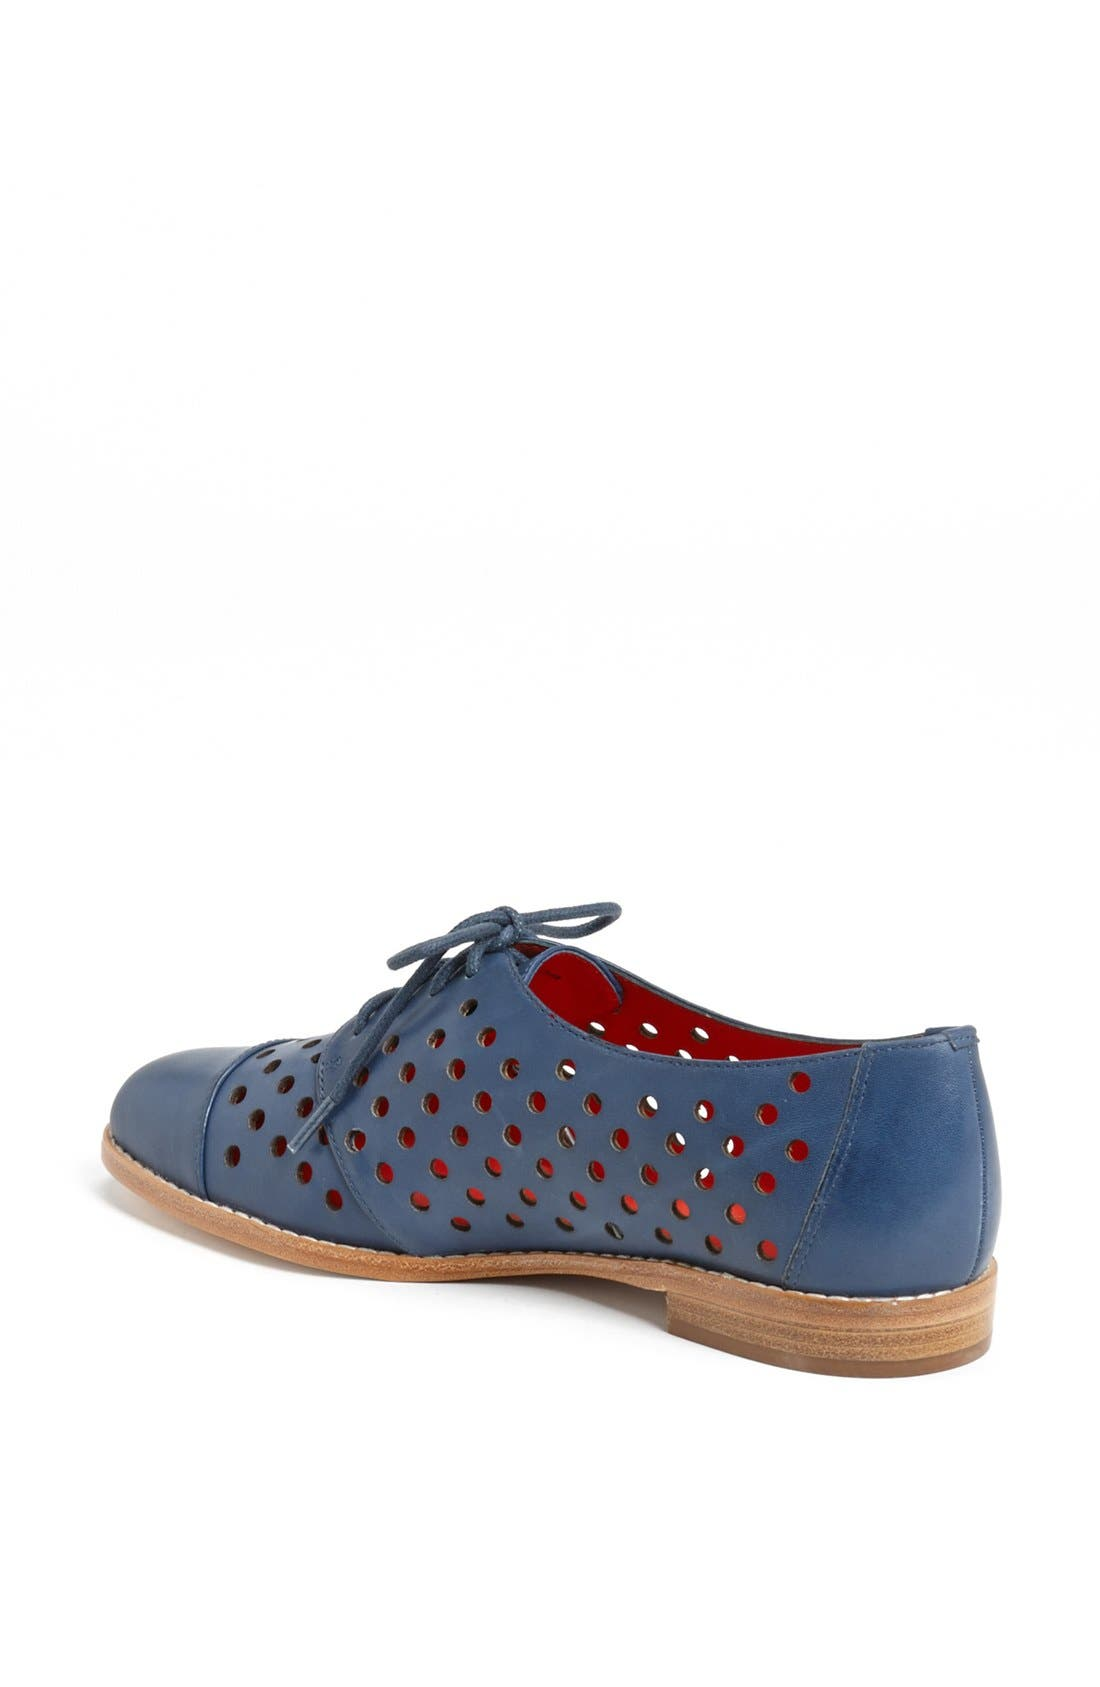 Alternate Image 2  - kate spade new york 'peekaboo' leather oxford